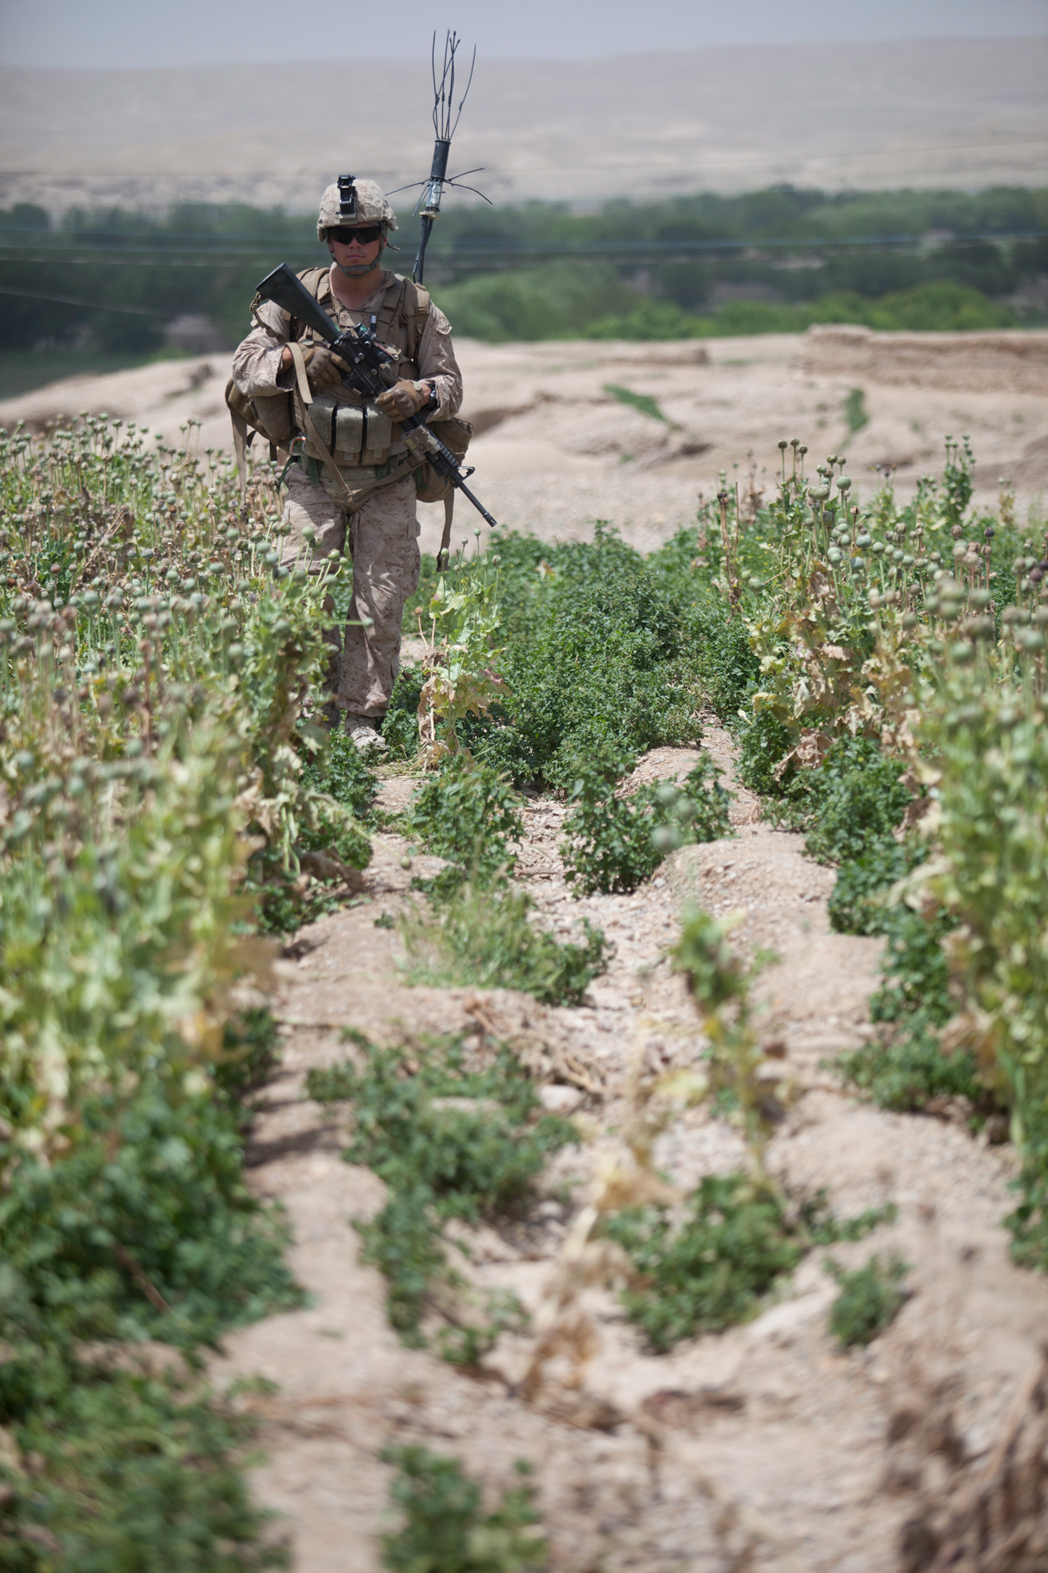 U.S. Occupation Leads to All Time High Afghan Opium Production opium fields 19